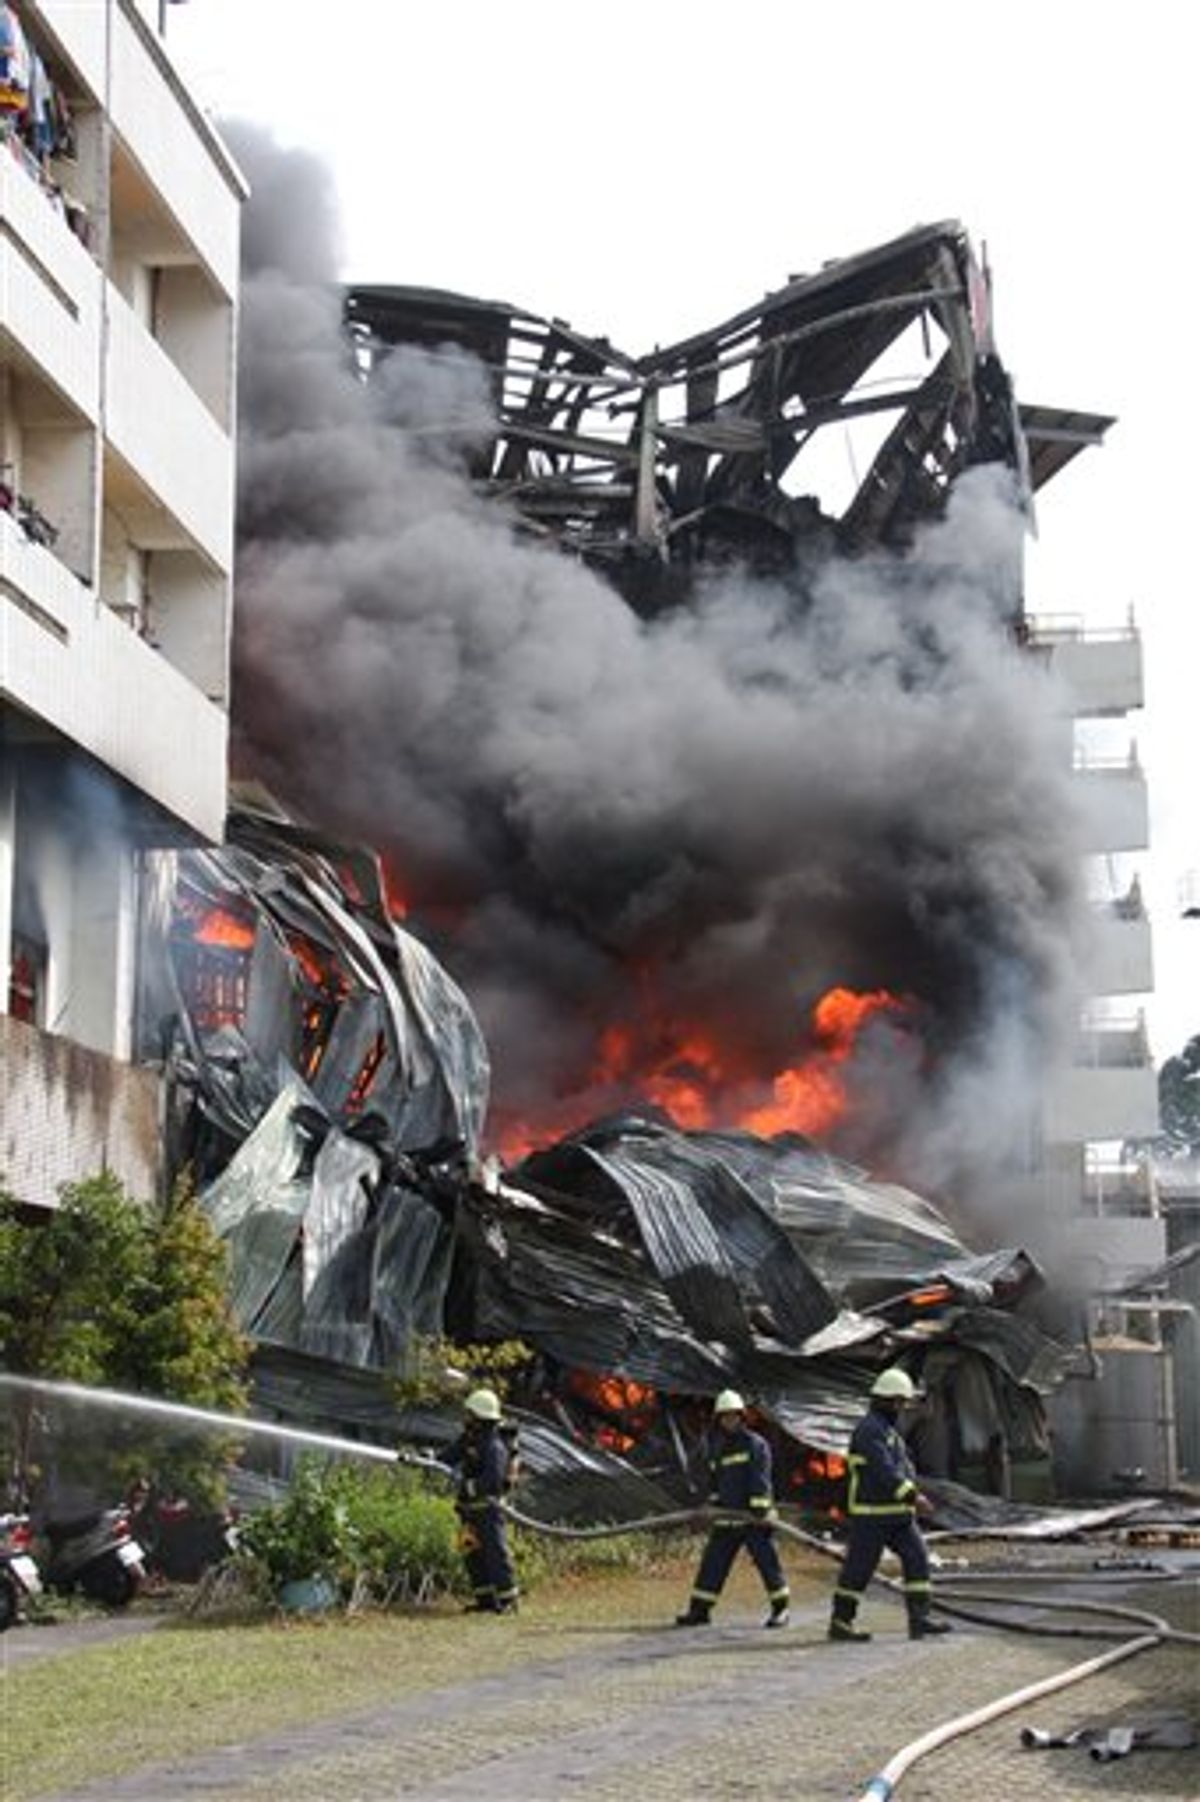 Firemen battle a blaze at a textile factory that started shortly after a strong earthquake jolted the island, Thursday, March 4, 2010, in the southern area of Tainan, Taiwan. A powerful 6.4-magnitude earthquake rocked southern Taiwan on Thursday morning, causing widespread damage, and disrupting communications around the island. (AP Photo) ** TAIWAN OUT ** (AP)